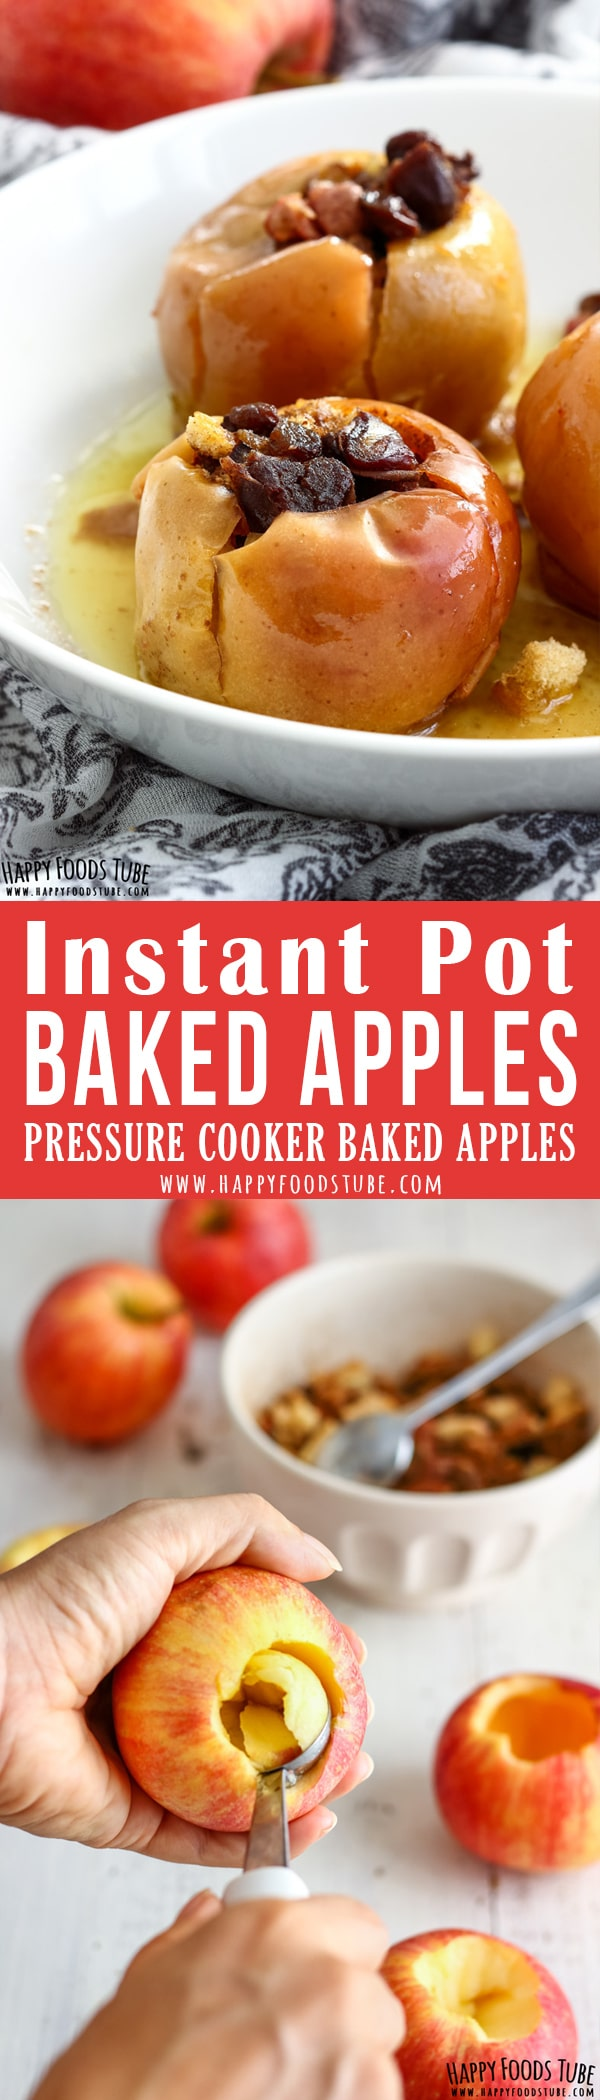 Instant Pot Baked Apples are the perfect Instant Pot dessert. 3 minutes active cooking time is all it takes to make these tender and rich in flavor baked apples. #bakedapples #baked #apples #instantpot #pressurecooker #recipe #stuffed #homemade #dessert #howtomake